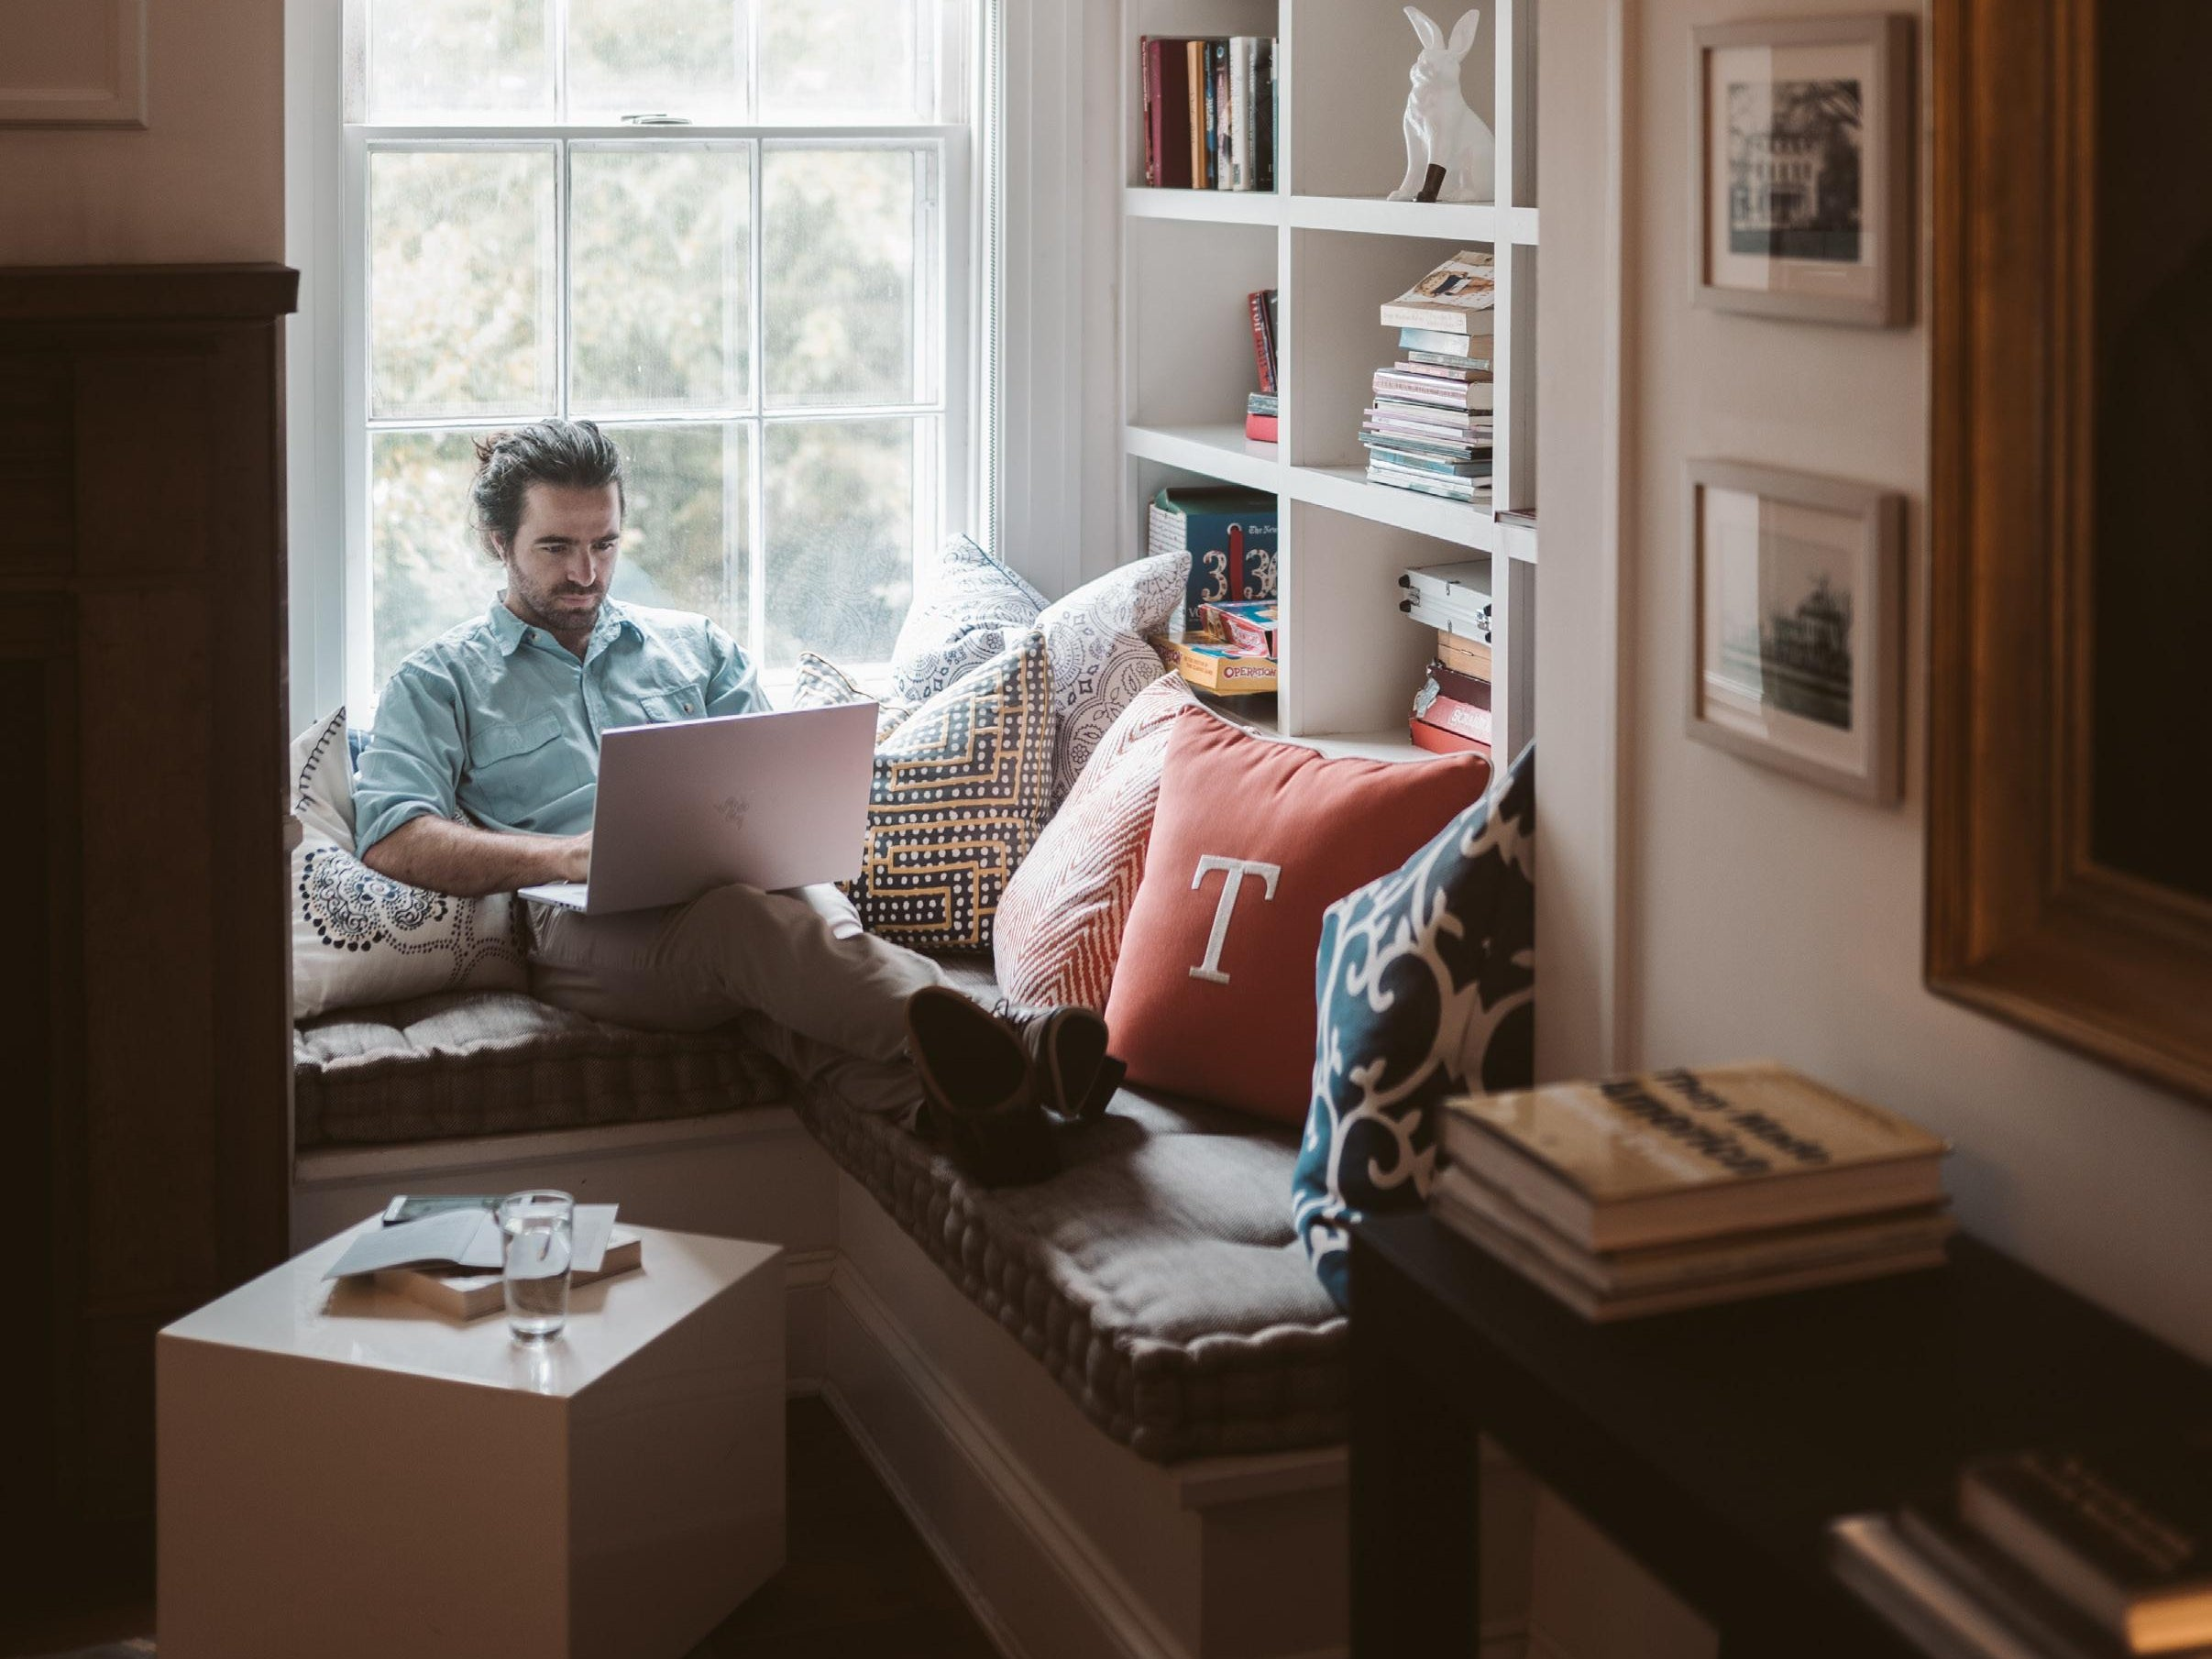 Read story: Working from home - the new norm?